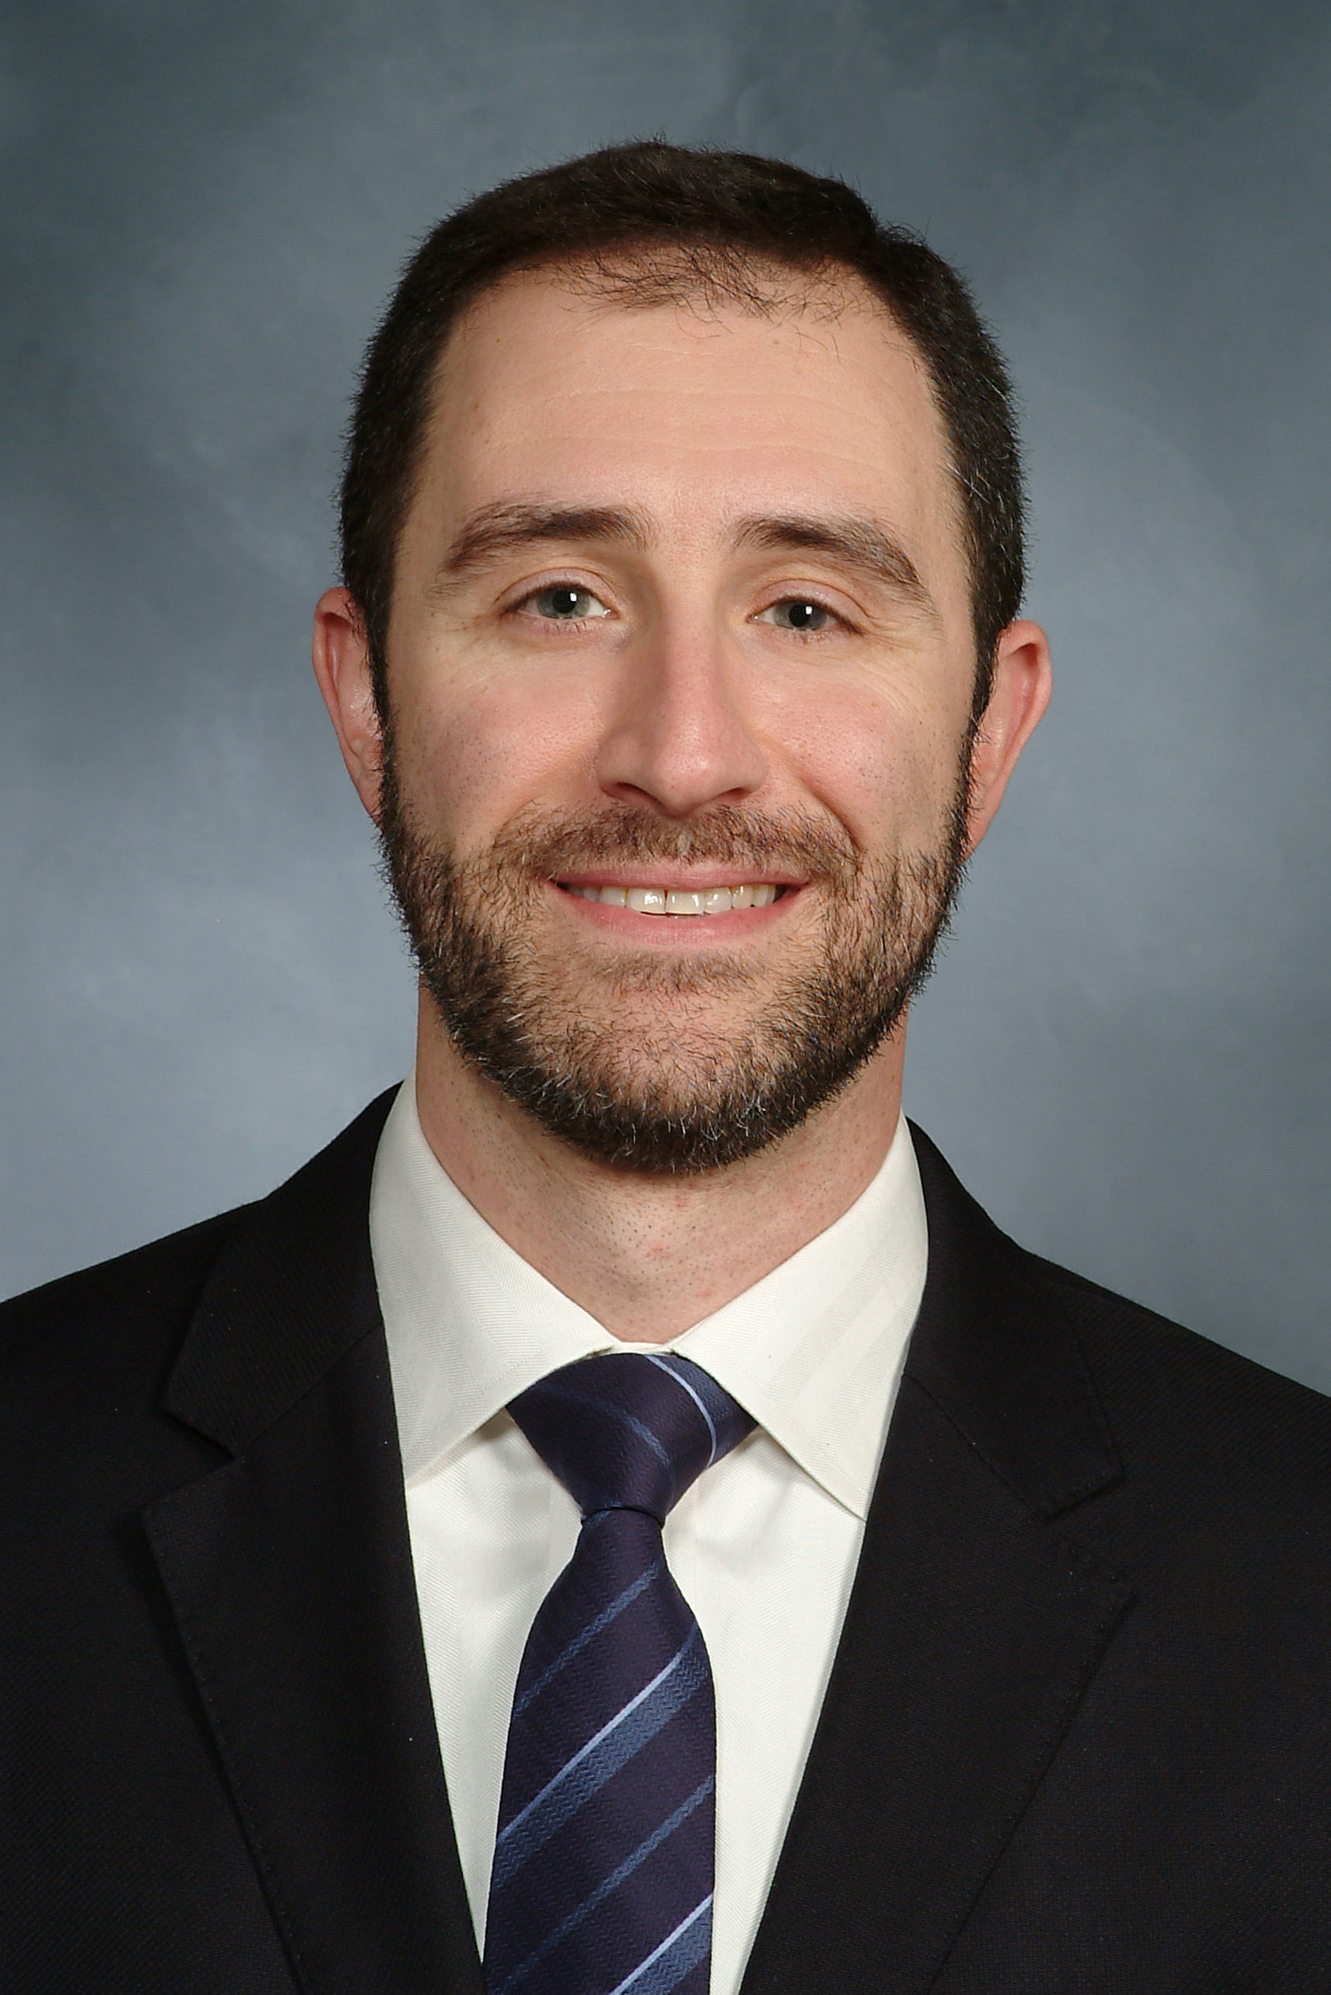 Dr. Christopher Barbieri, M.D., Ph.D | Cornell Urology